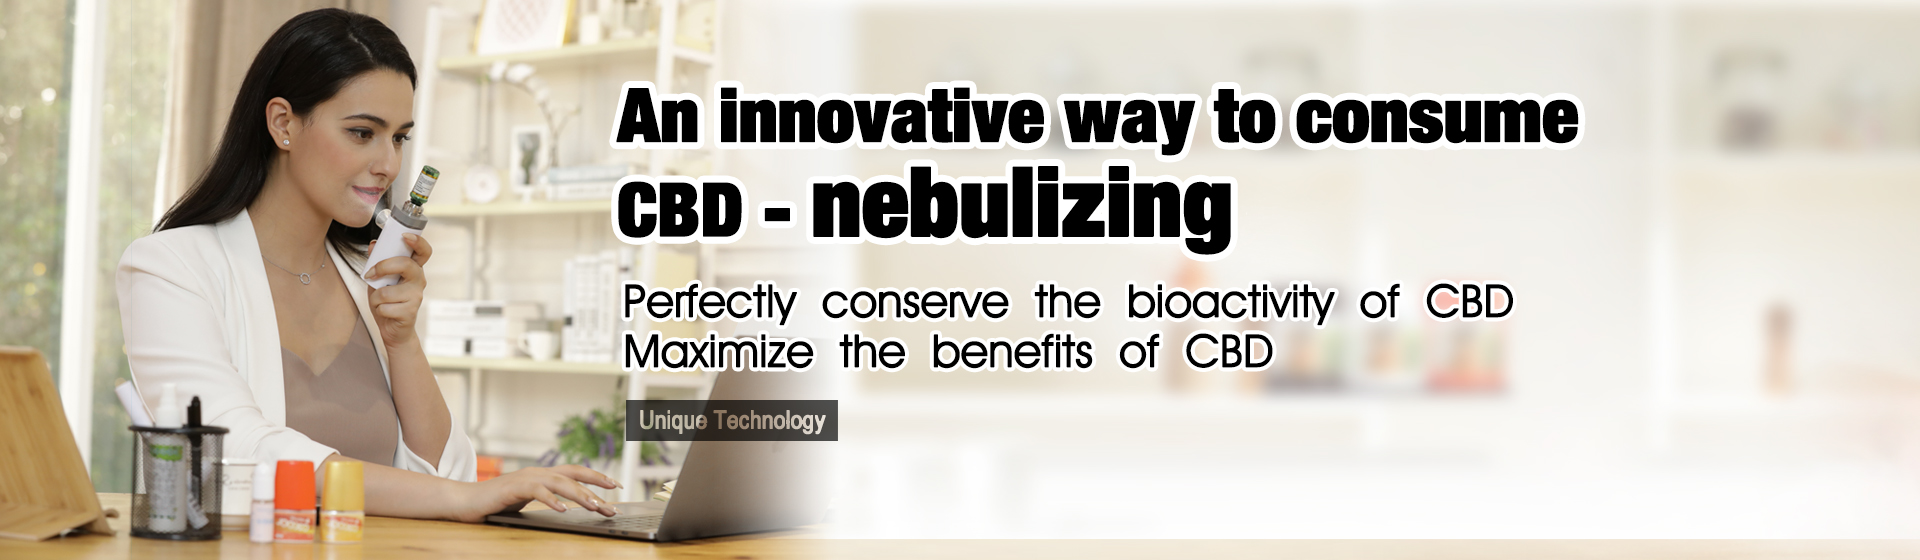 An innovative way to consume CBD--nebulizing. CANNAPRESSO MESH V+ technology